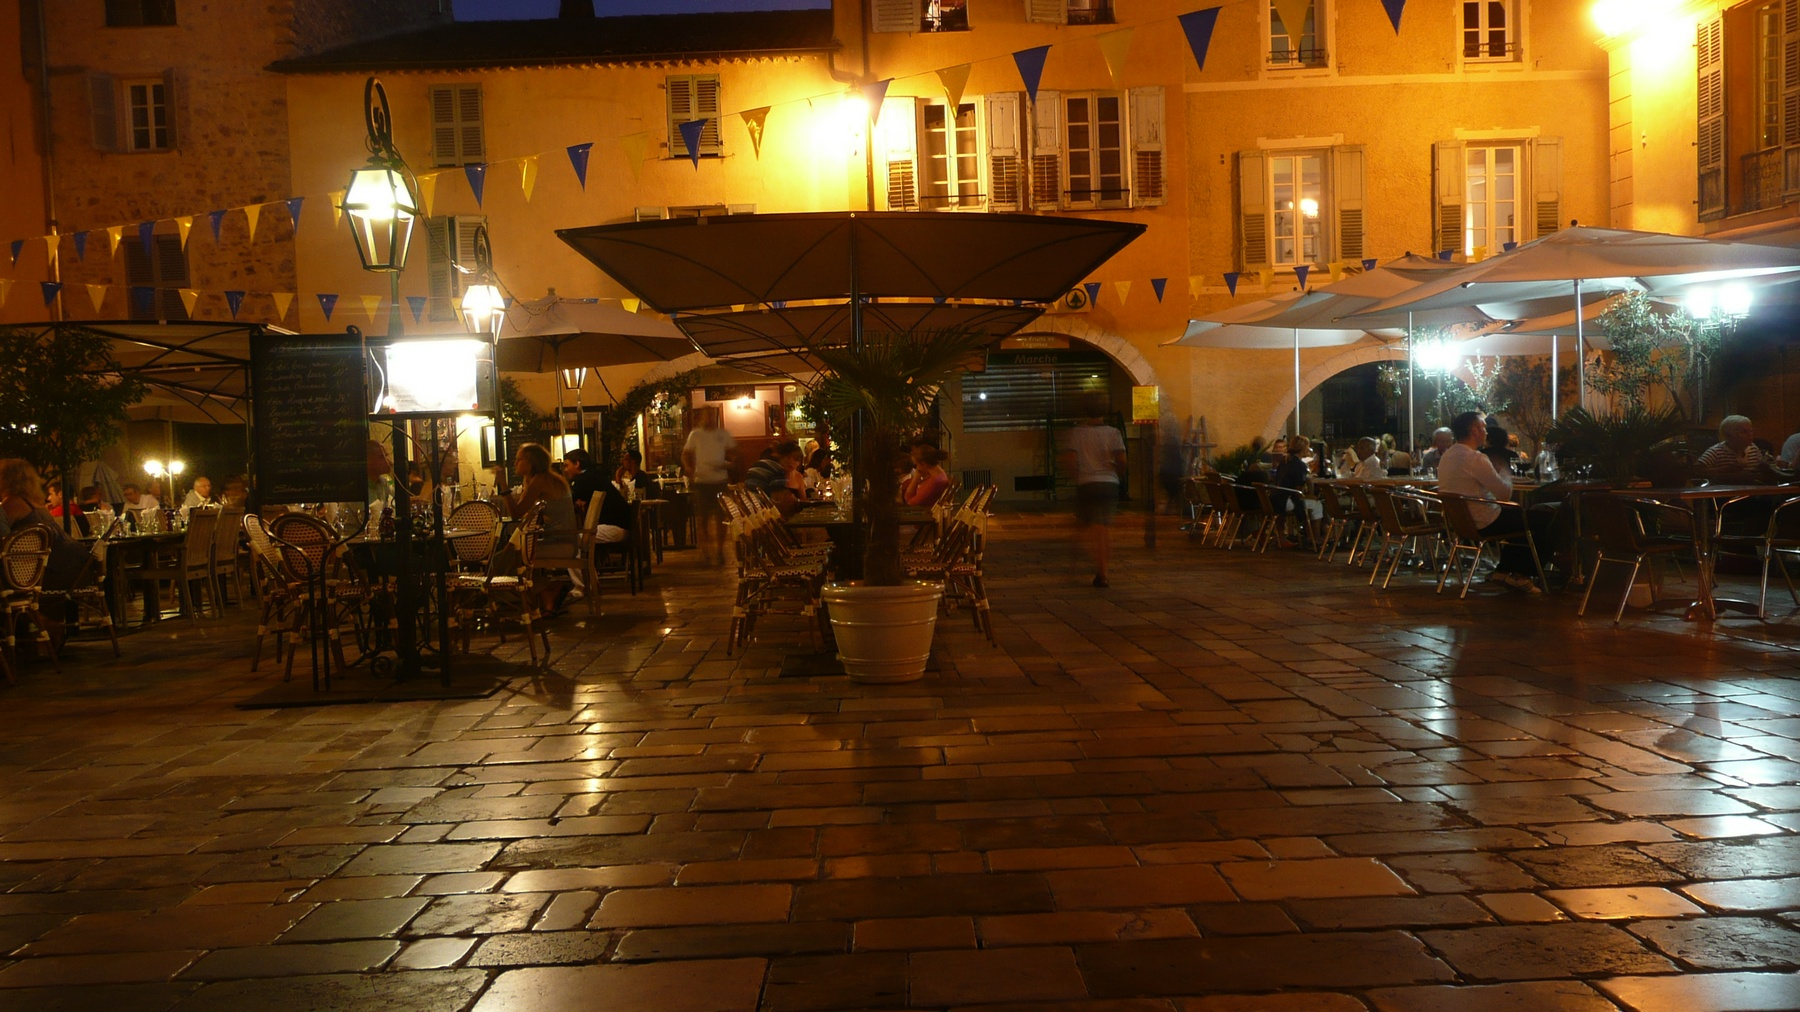 Valbonne center square with restaurants